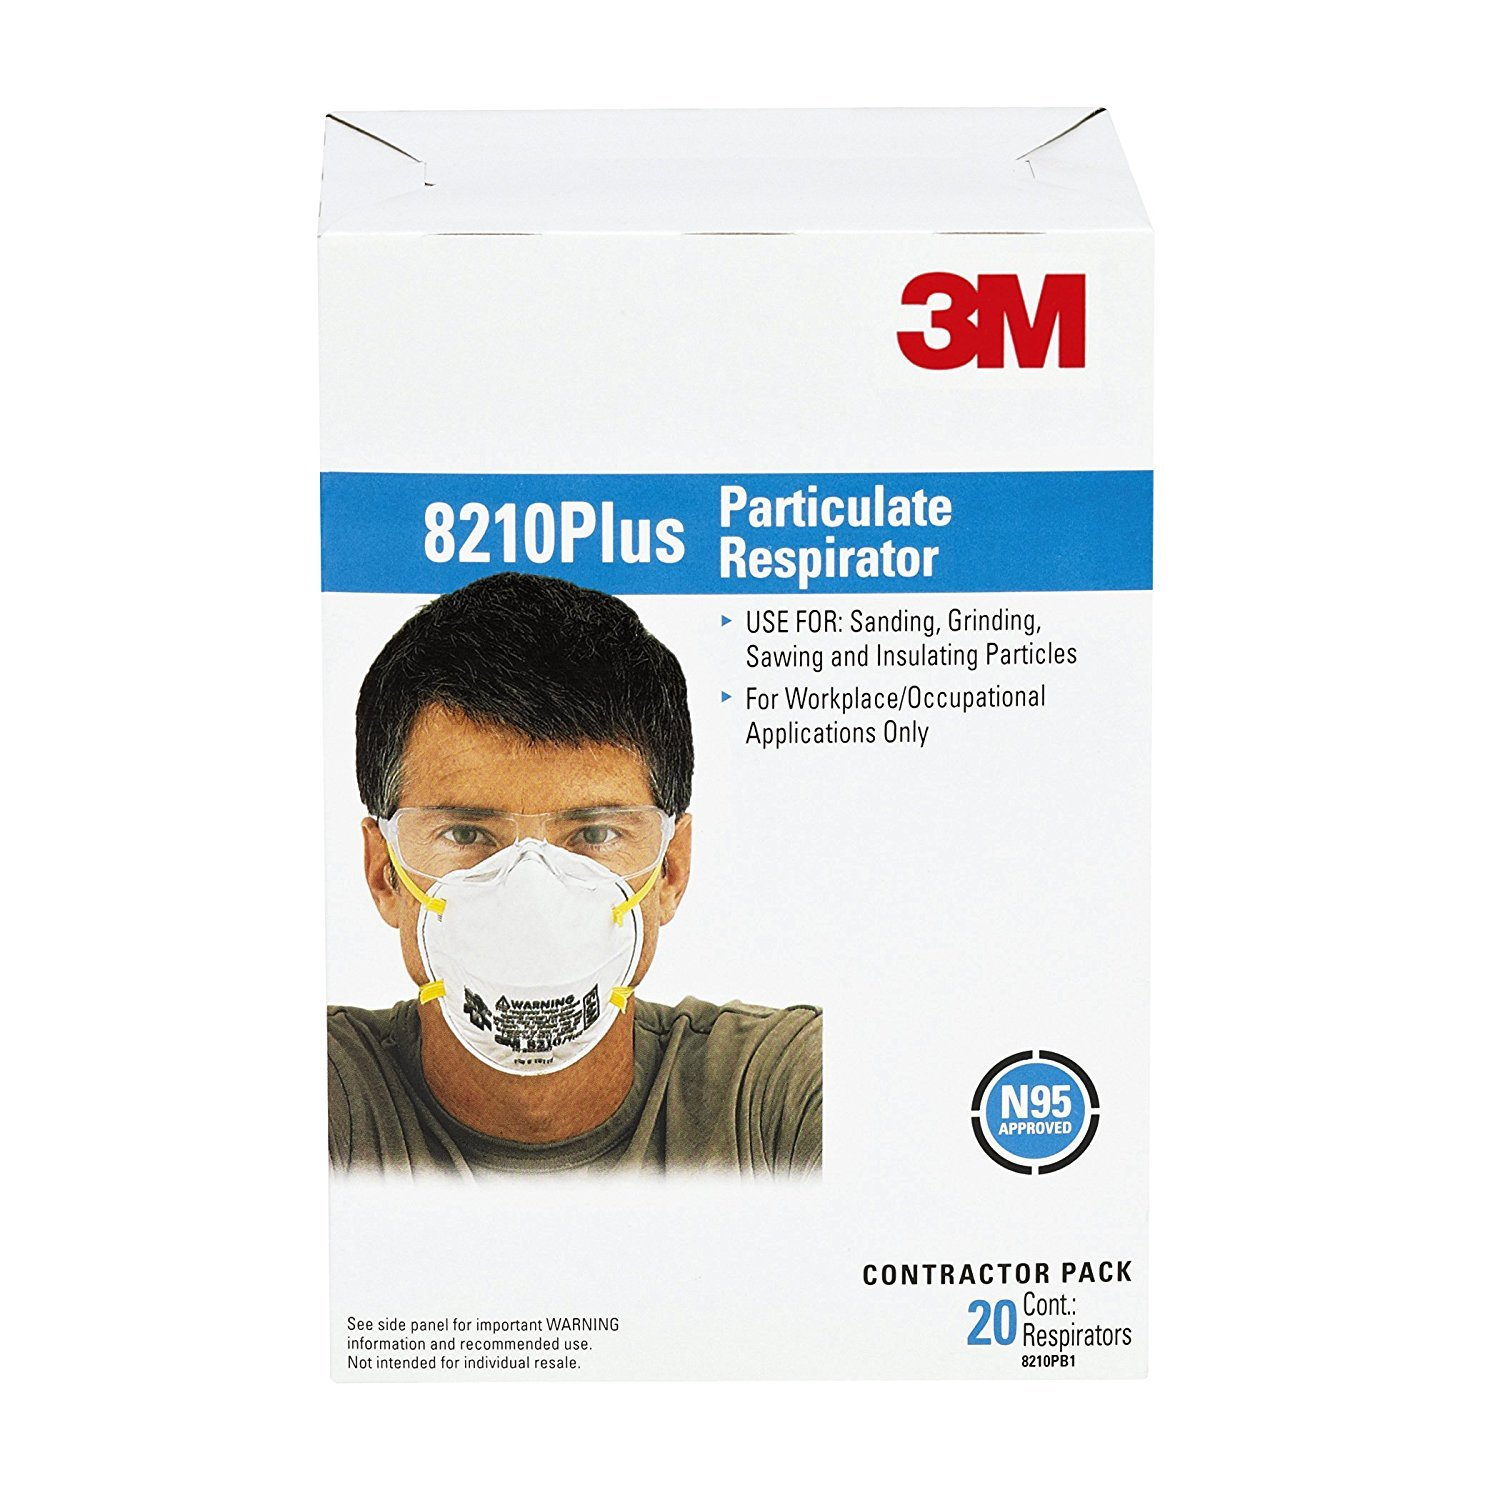 3M Standard N95 8210 Plus Disposable Particulate Respirator 7 Boxes of 20 per Box (140 Count) by 3M